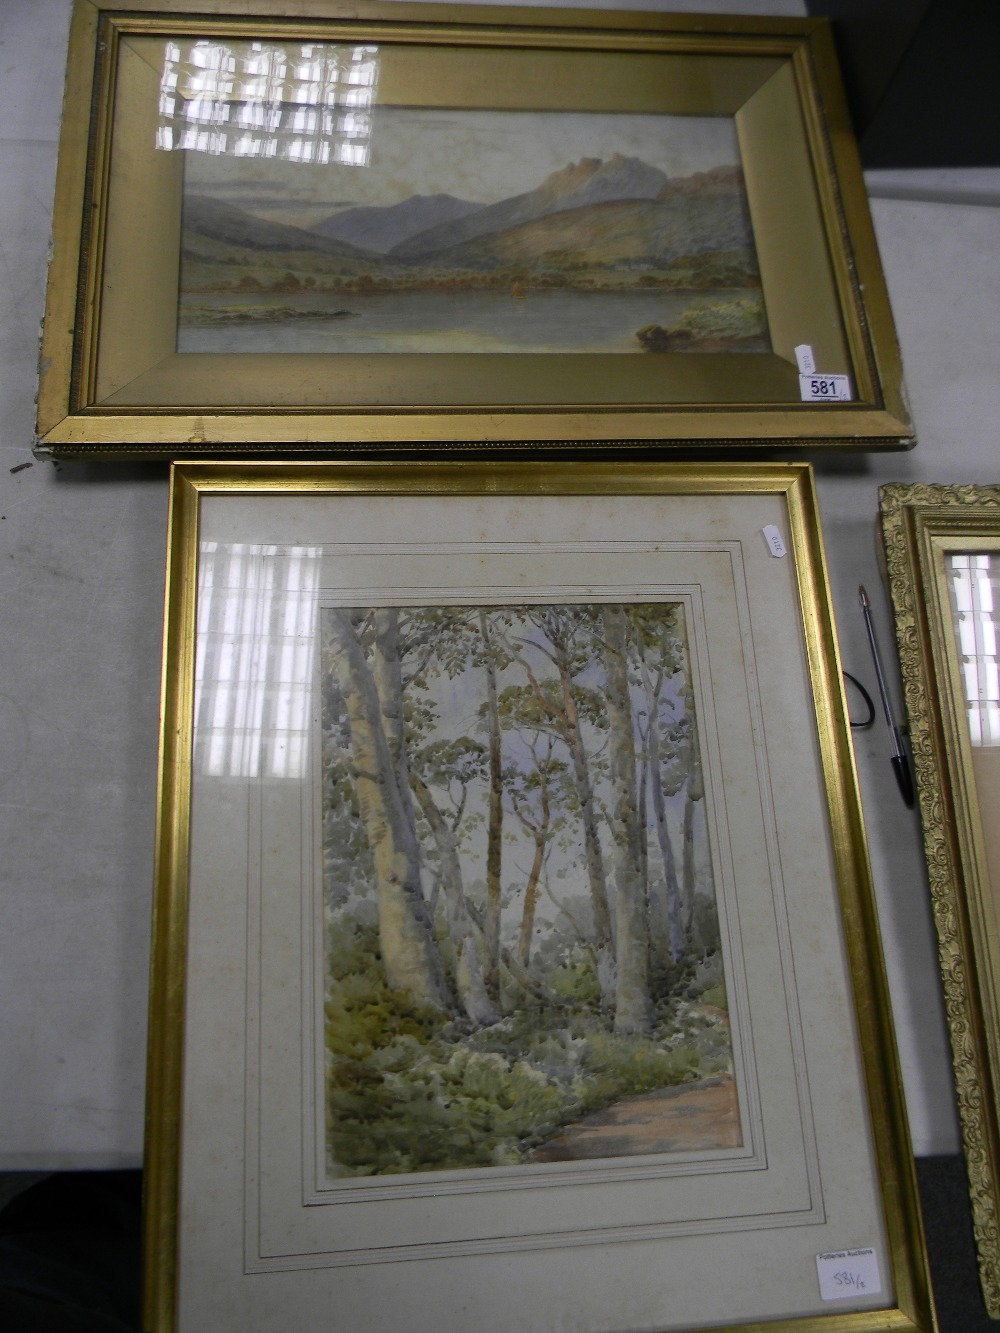 Early 20th Century Watercolour : signed V Allan: together with later image of Silver Birches,